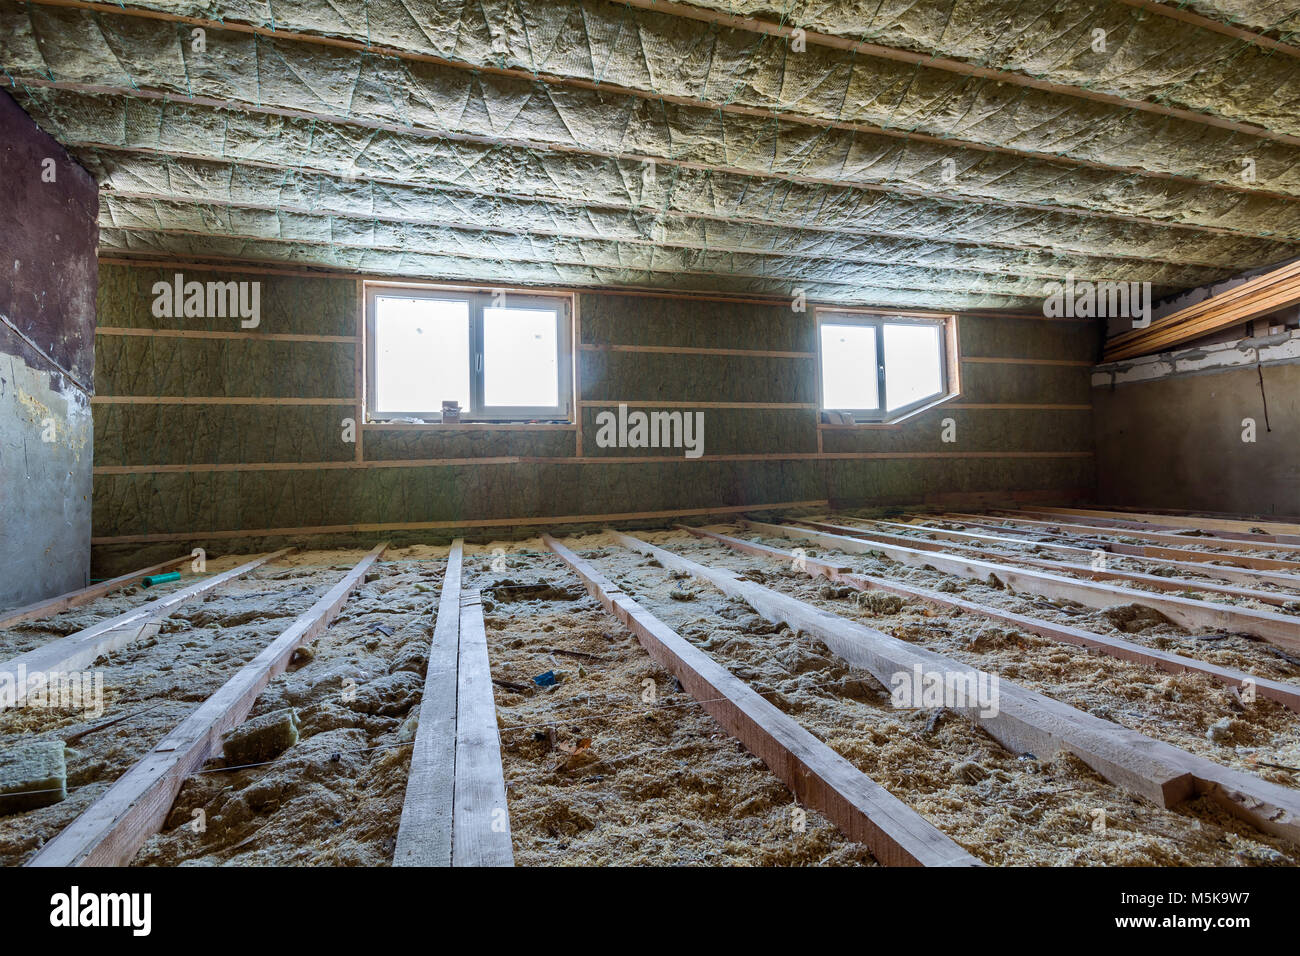 Joist ceiling stock photos joist ceiling stock images for Rocks all insulation